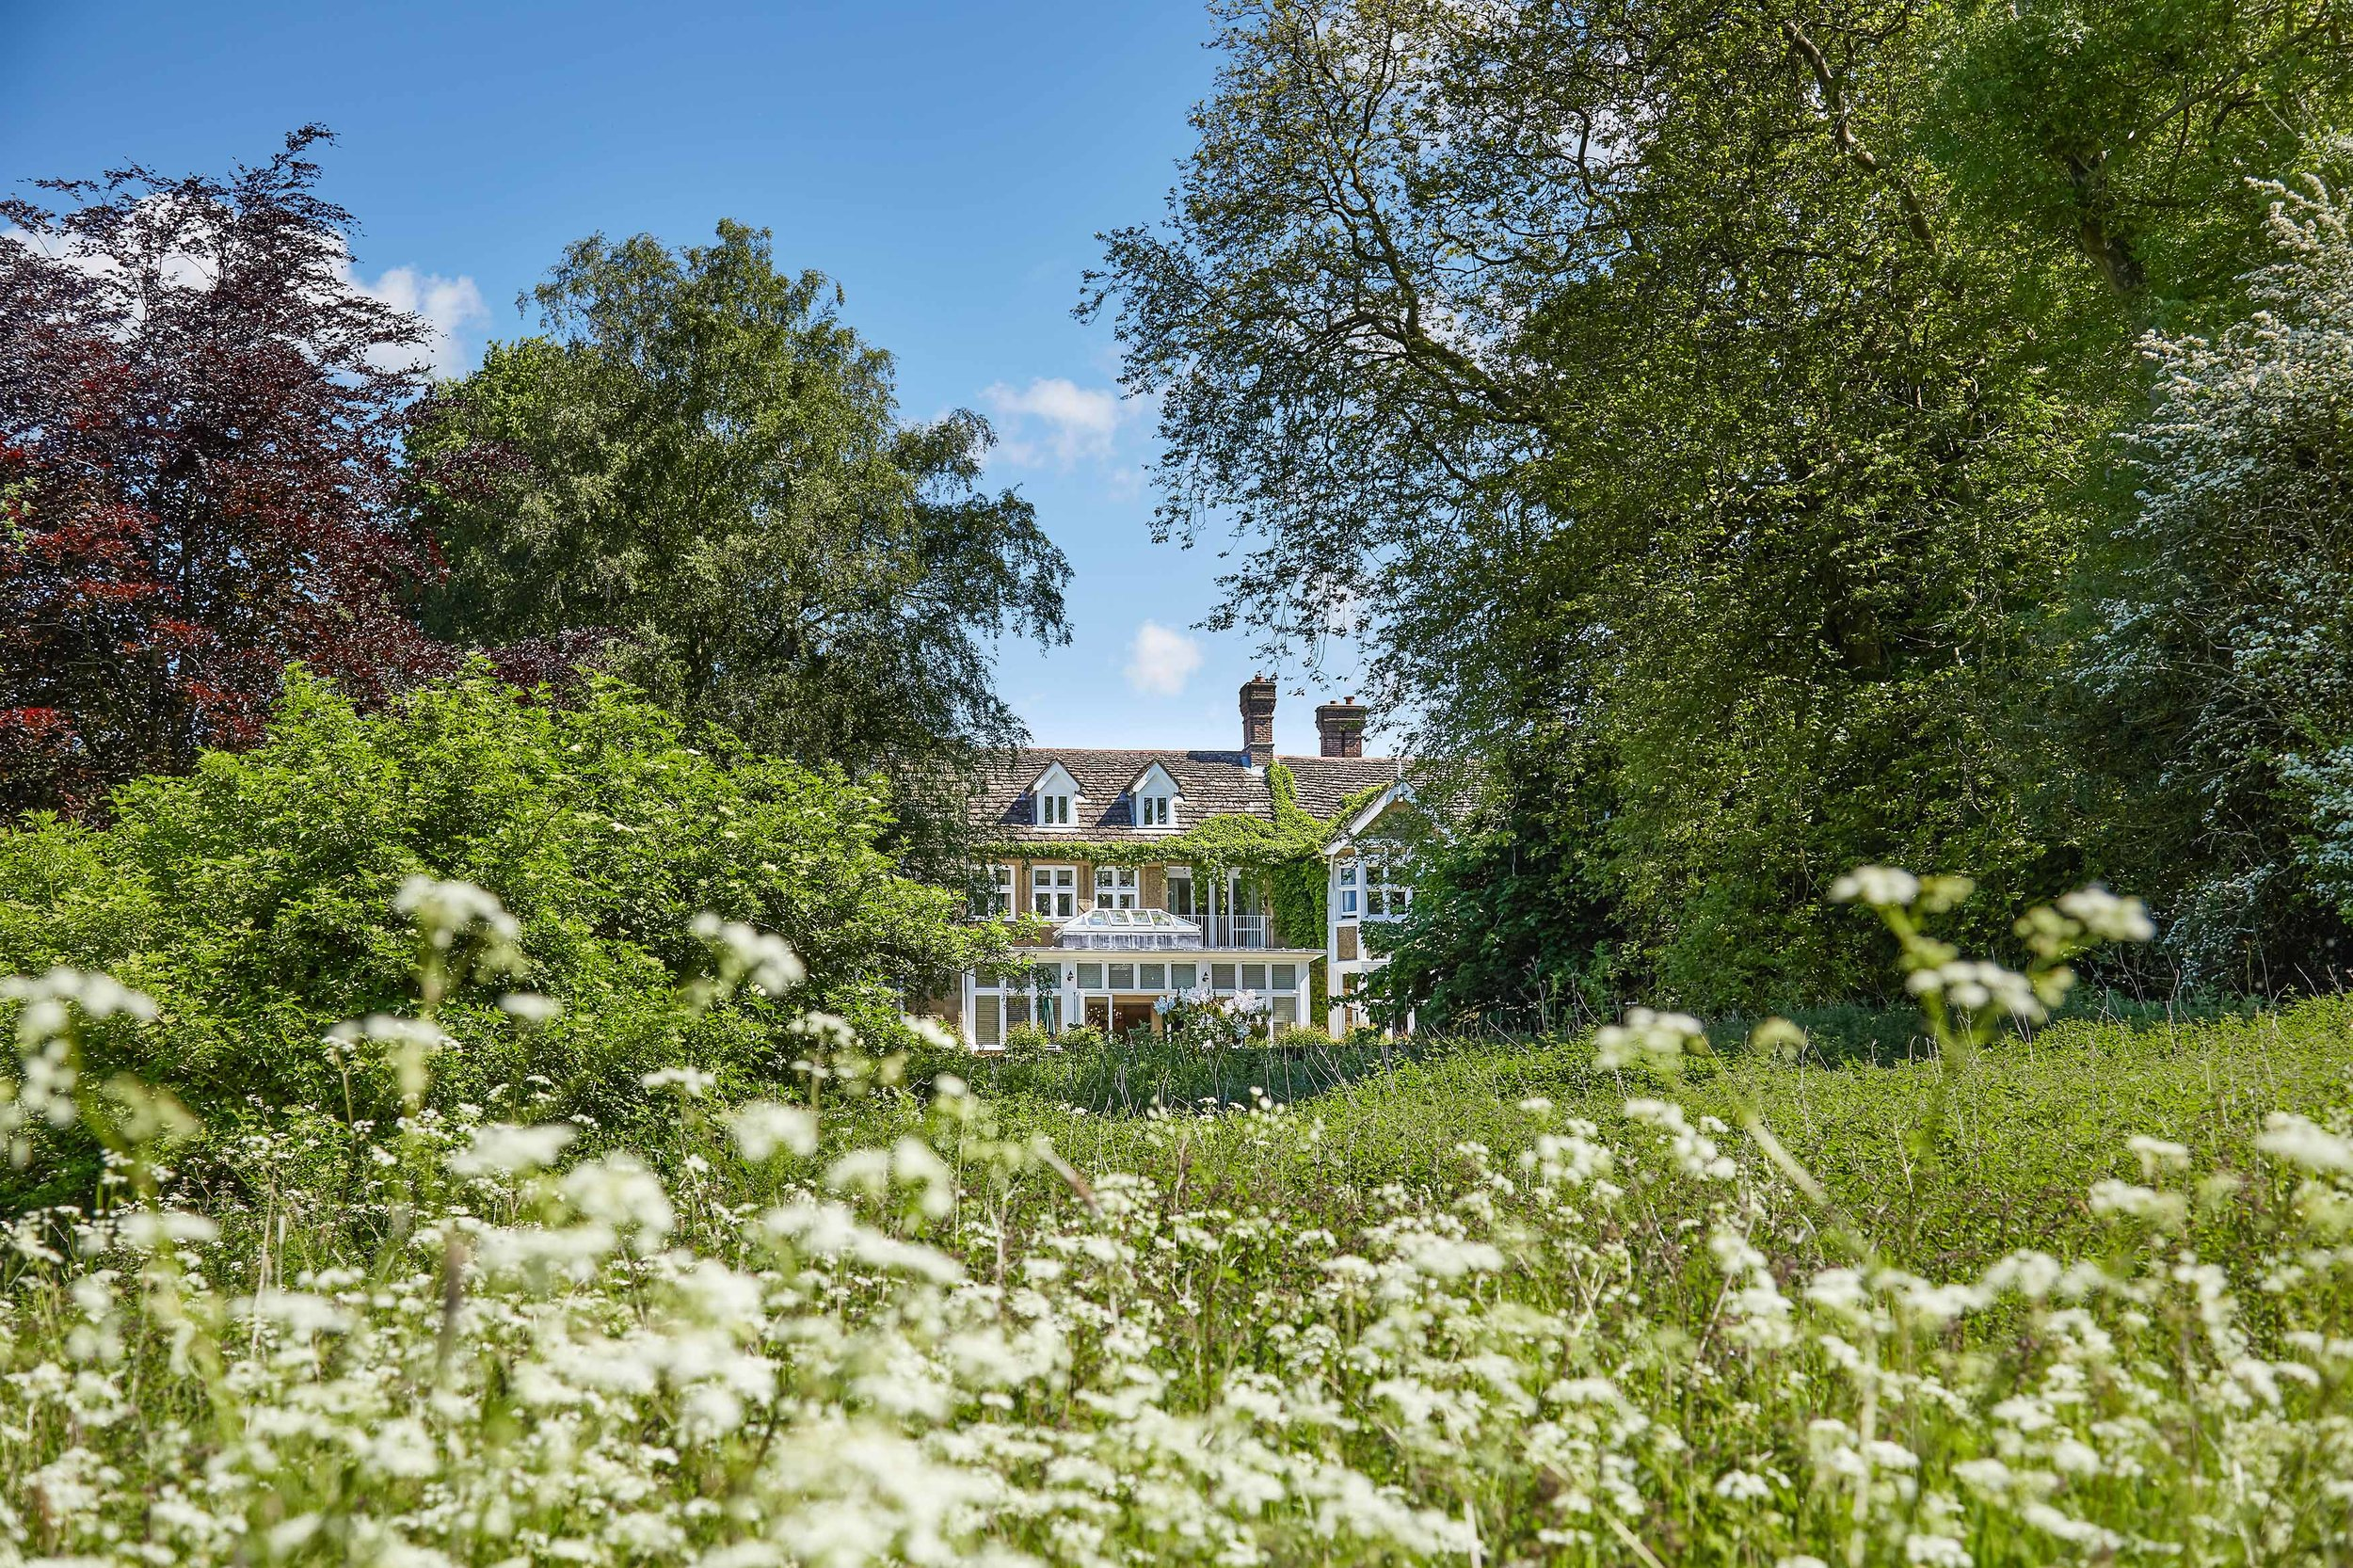 Ockenden Hotel and Spa in Cuckfield, West Sussex